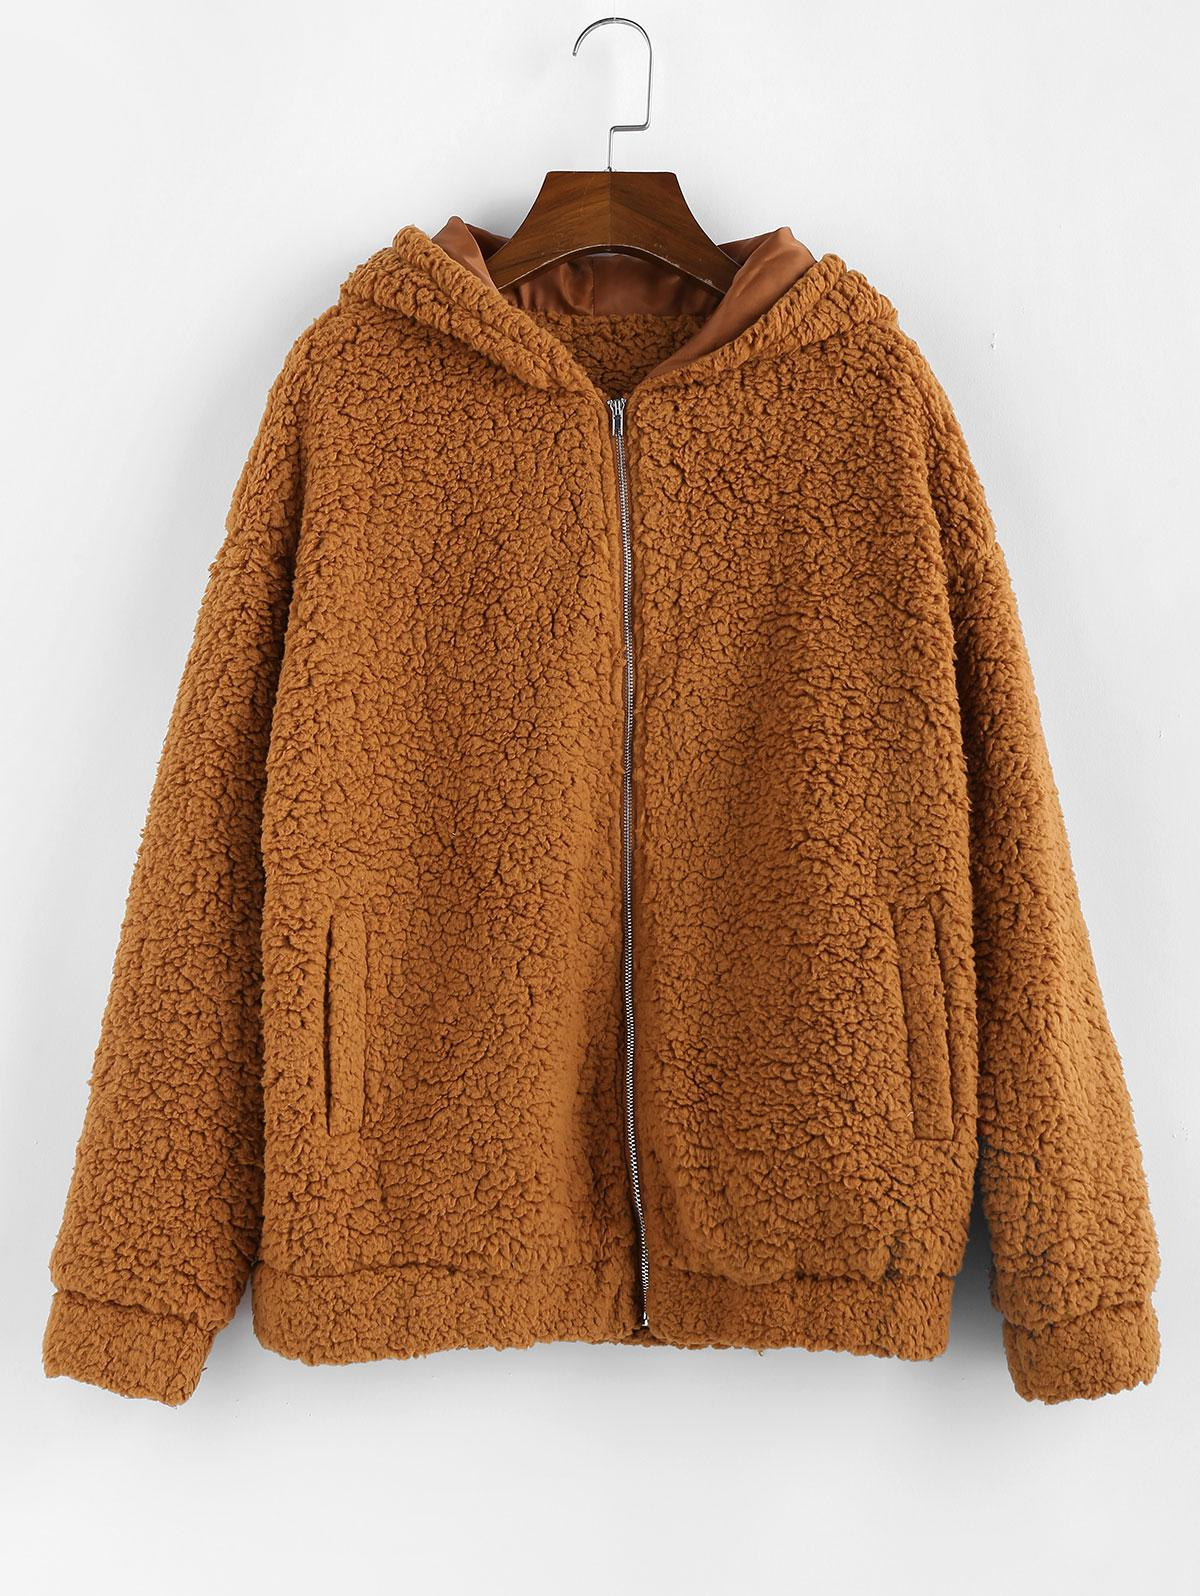 ZAFUL Hooded Zip Up Pocket Fluffy Teddy Jacket